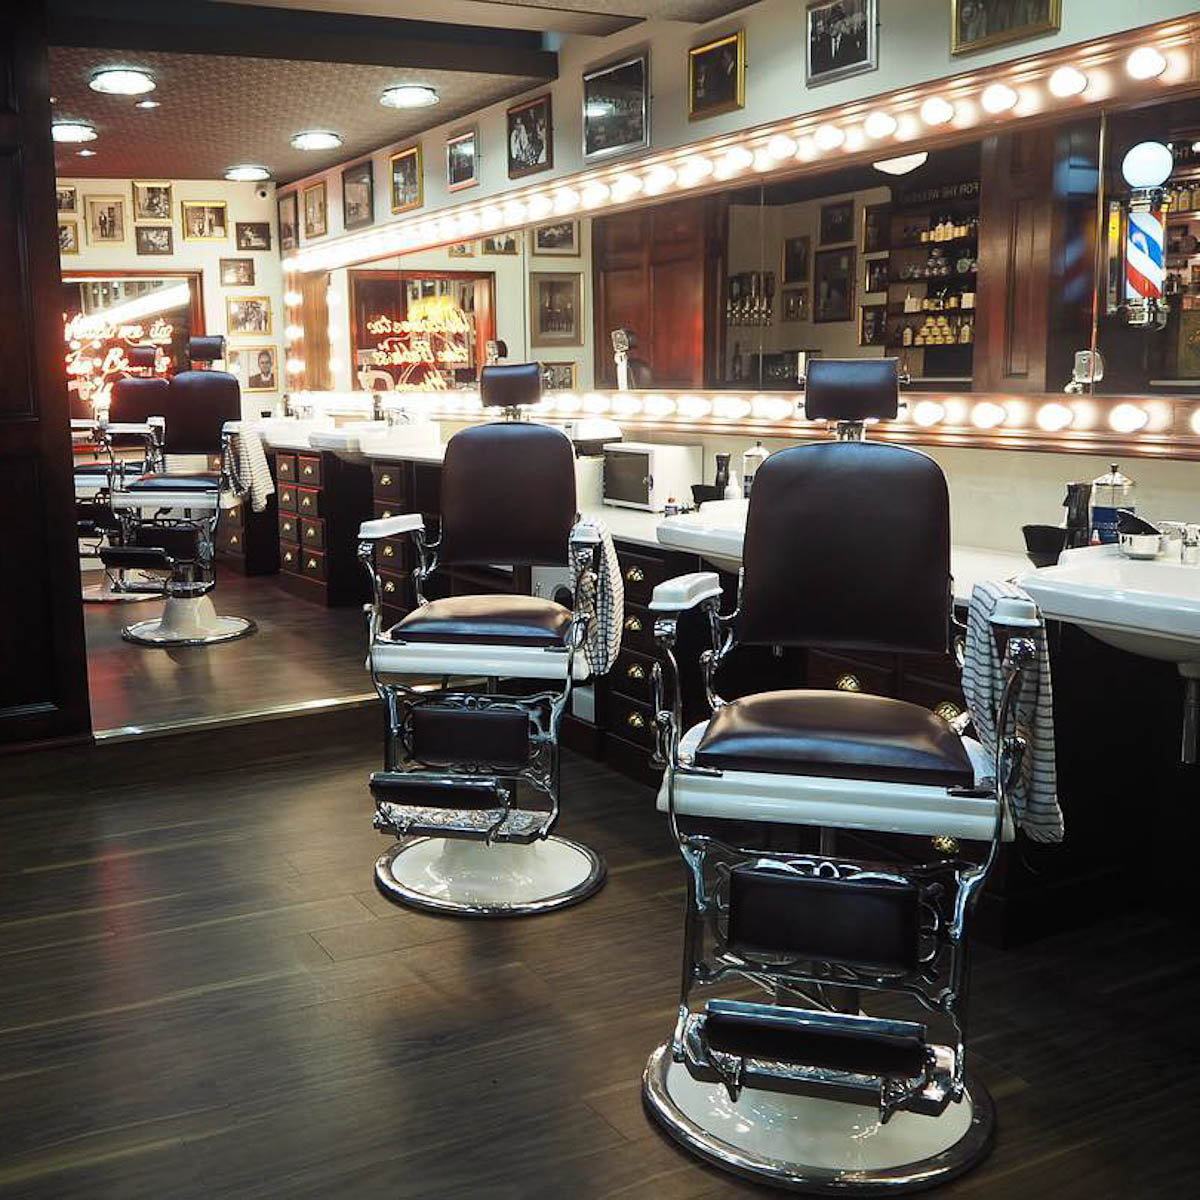 barber-barber-london-best-barbershops-man-for-himself